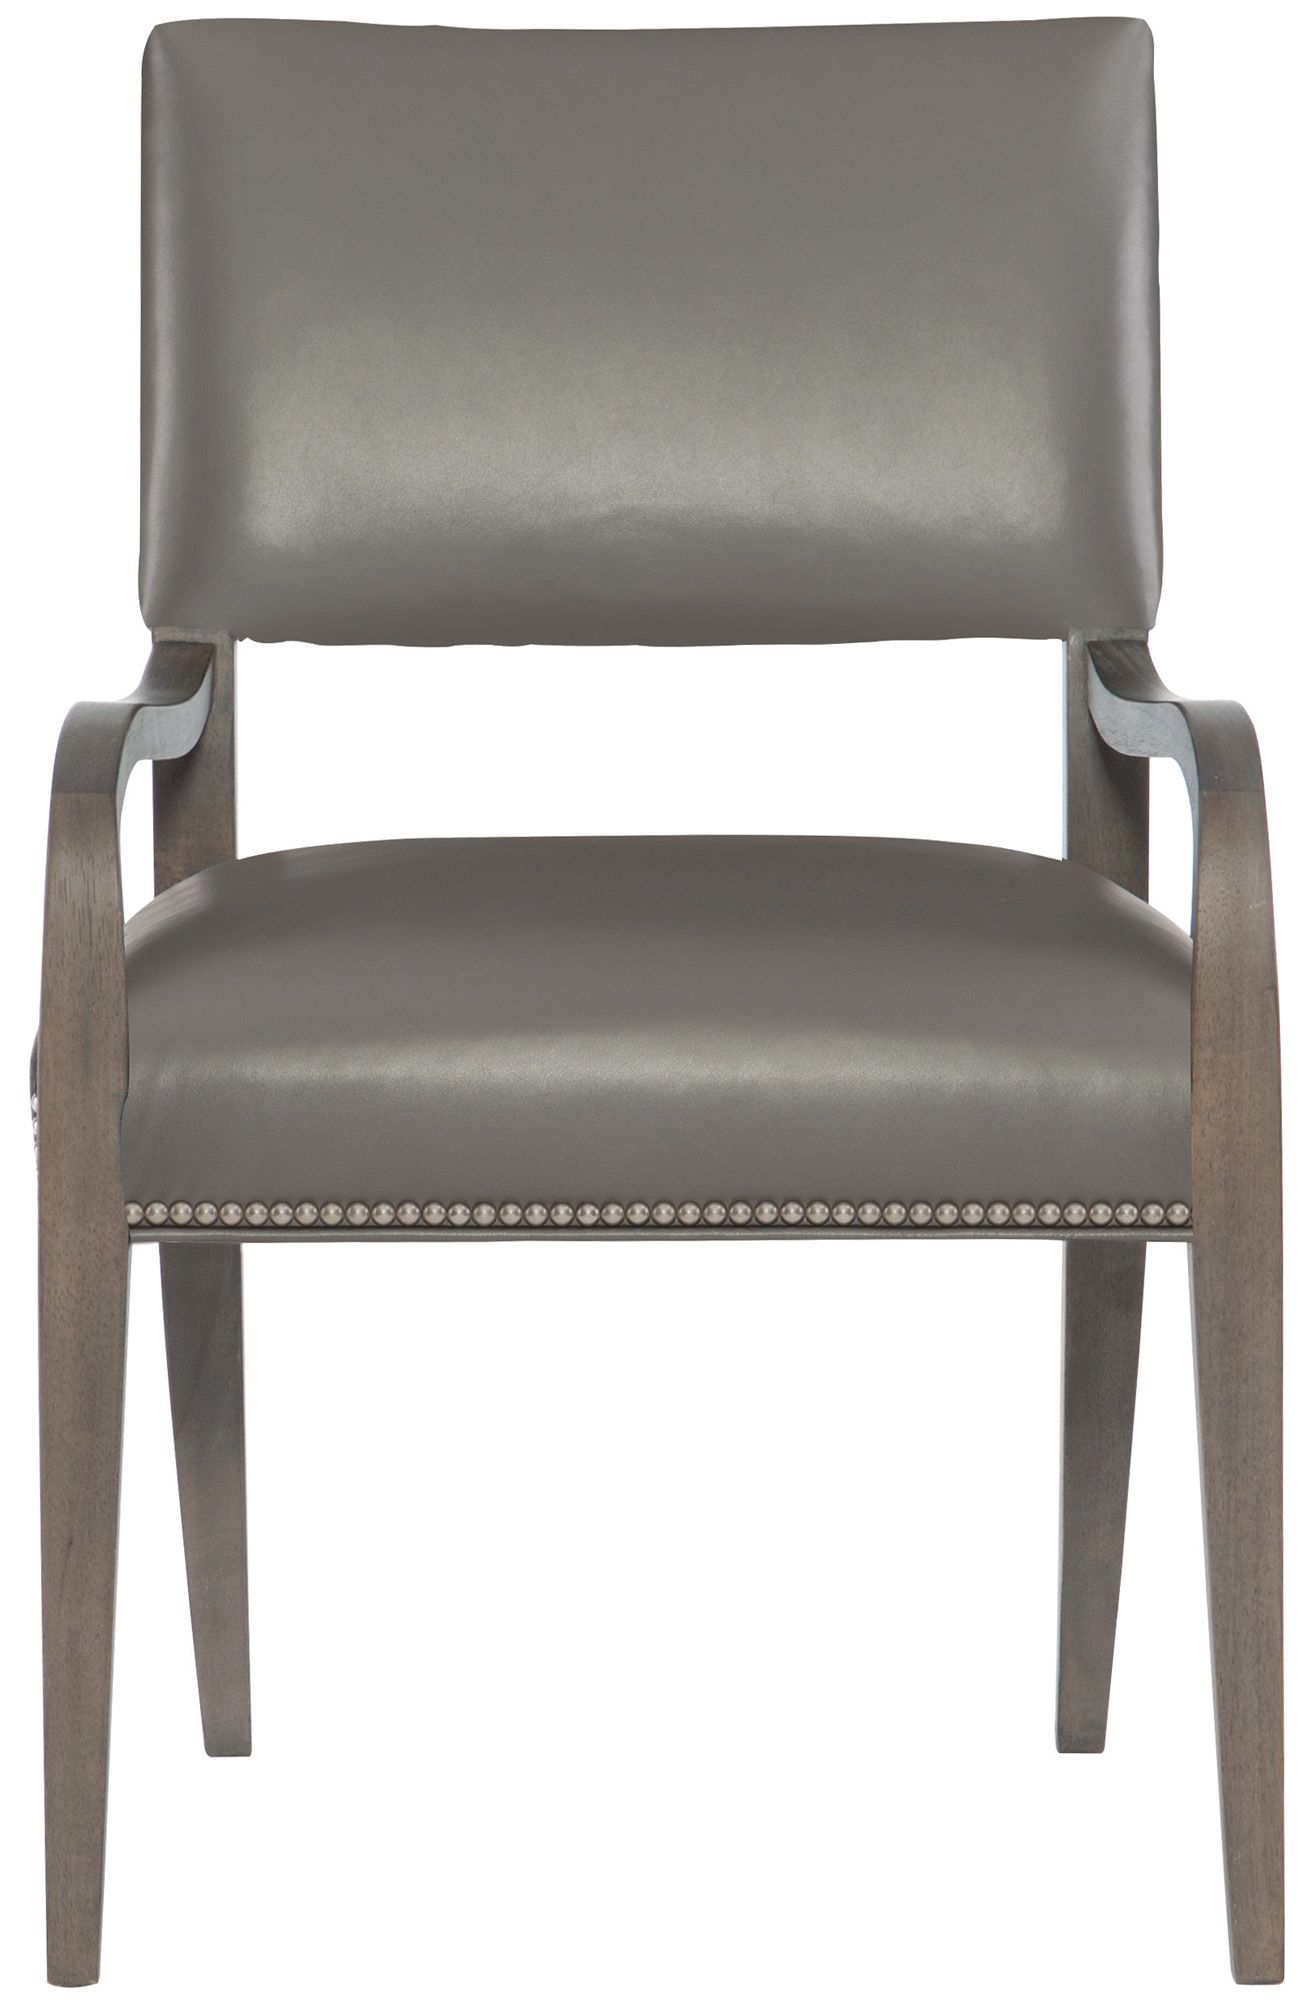 Bernhardt Interiors Moore Leather Dining Chair In 2020 Leather Armchair Leather Dining Chairs Dining Chairs